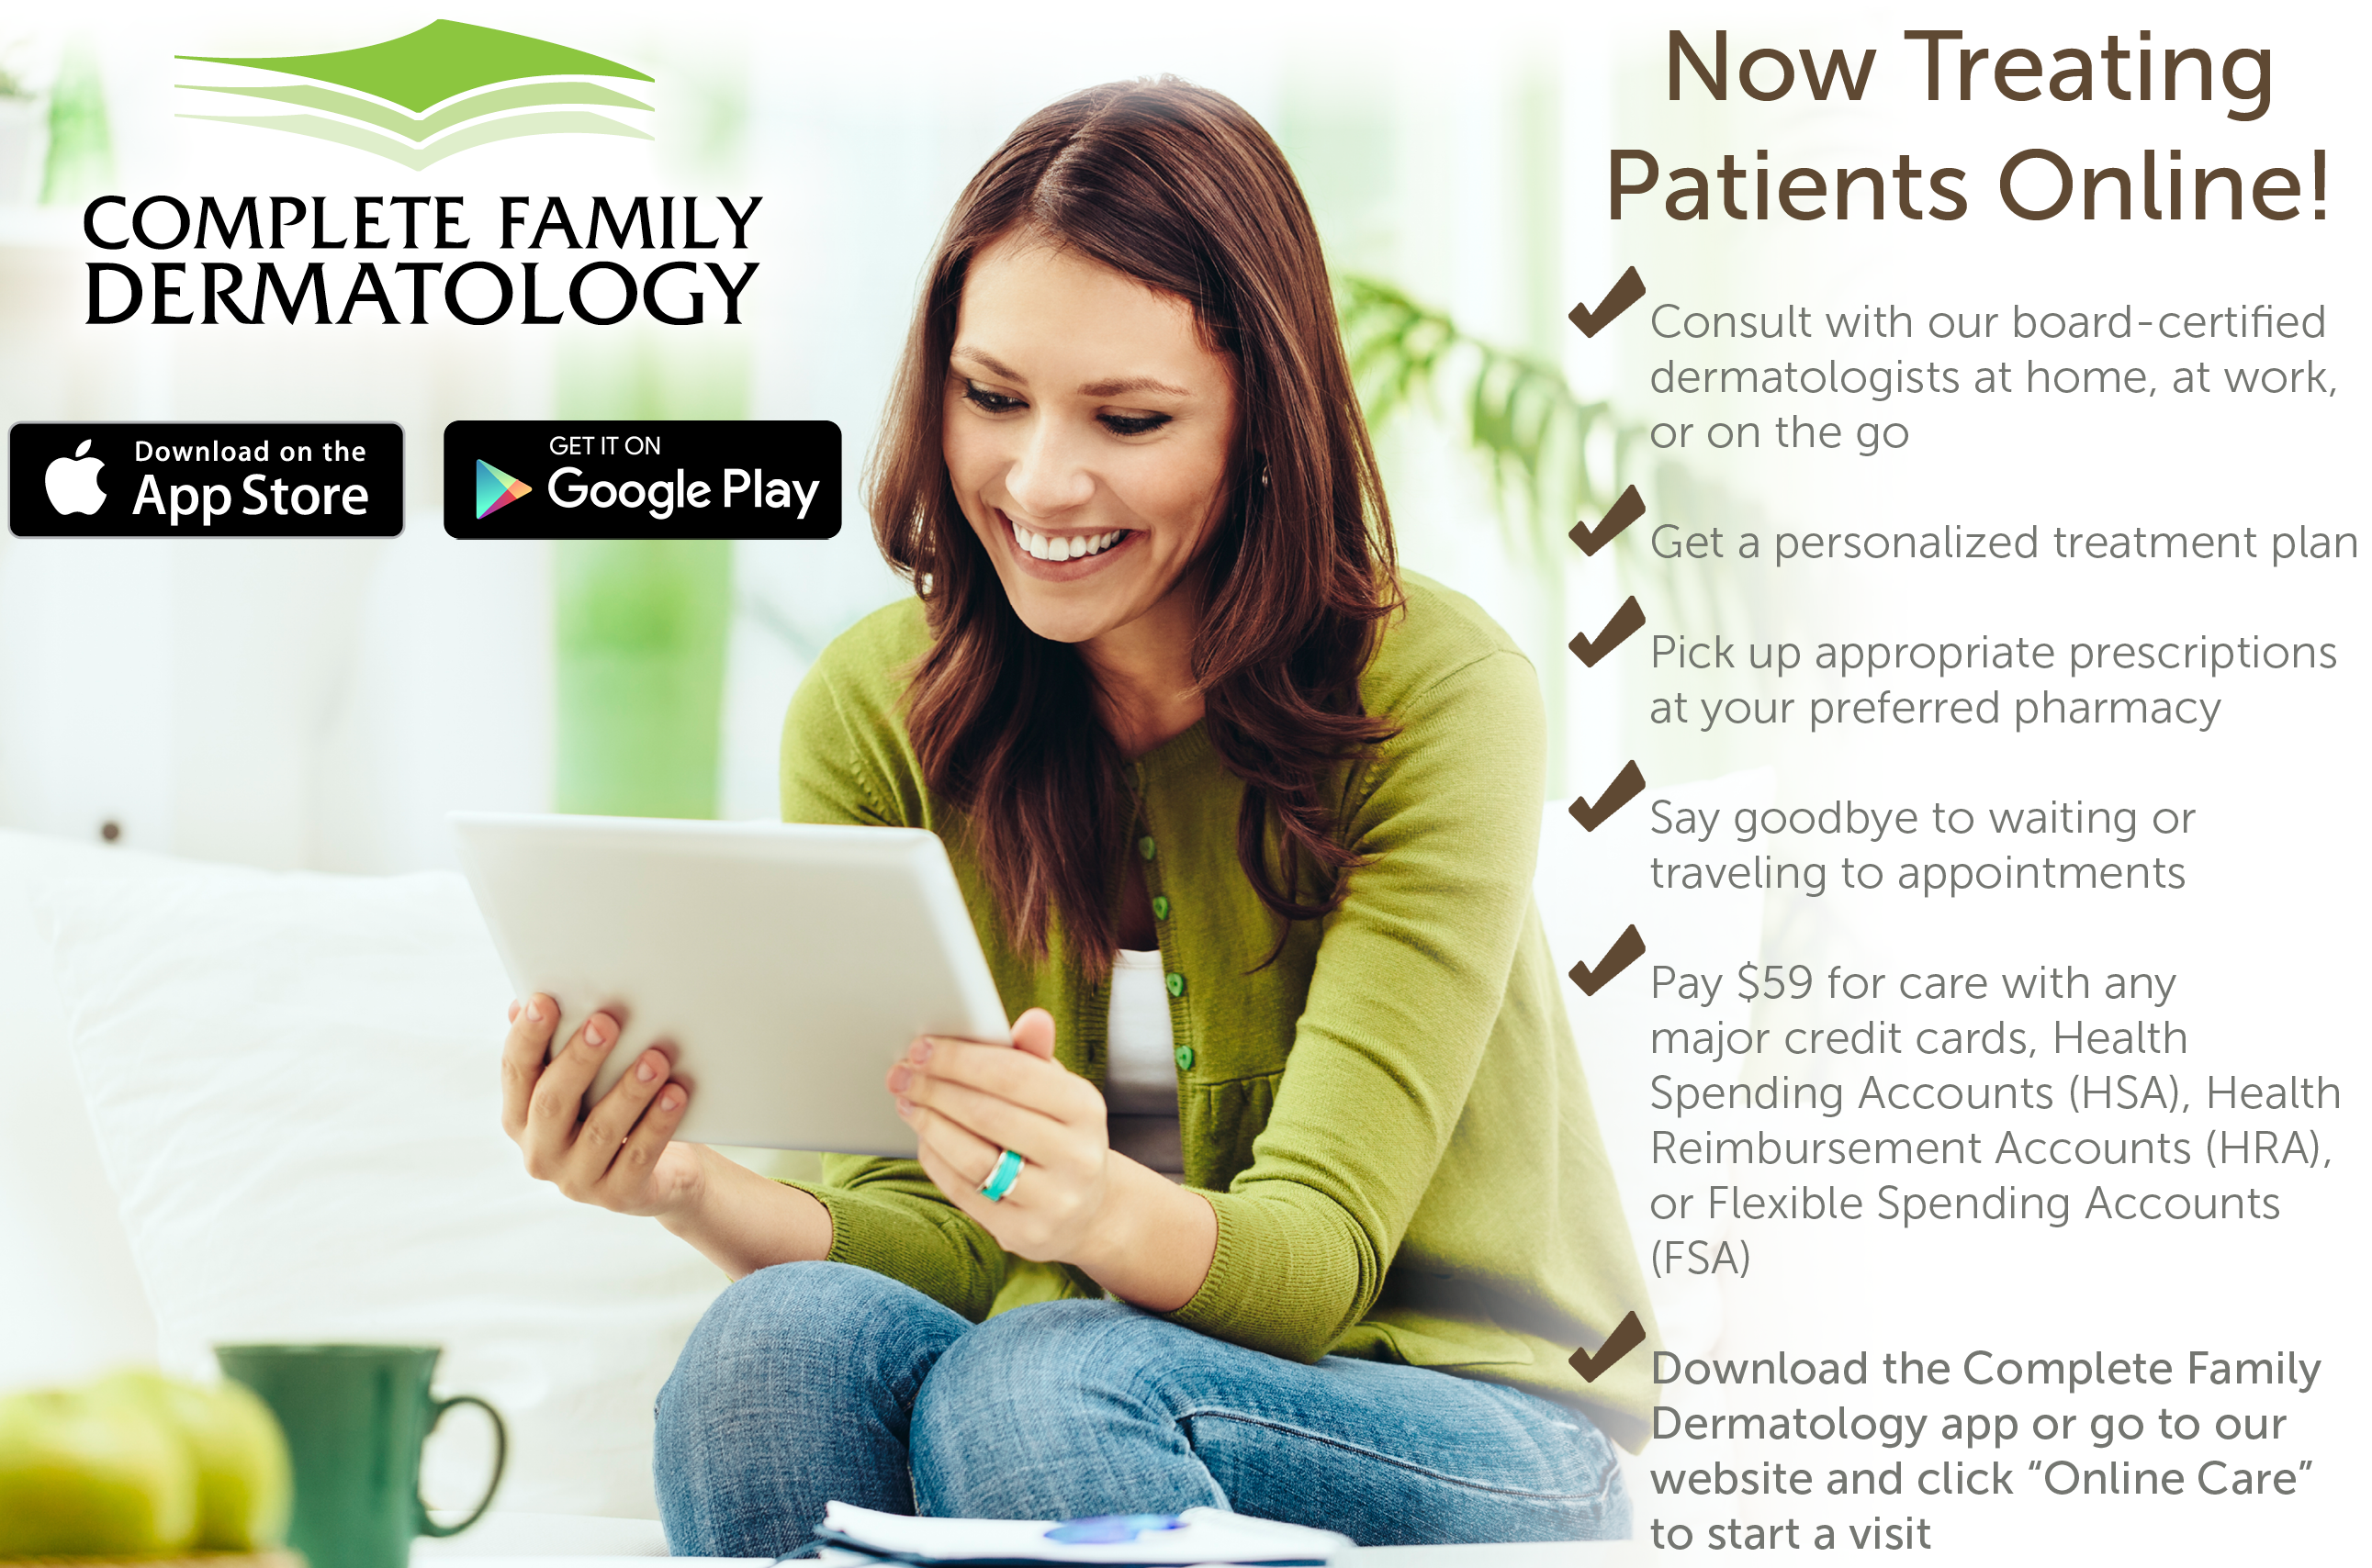 New online care at Complete Family Dermatology!!